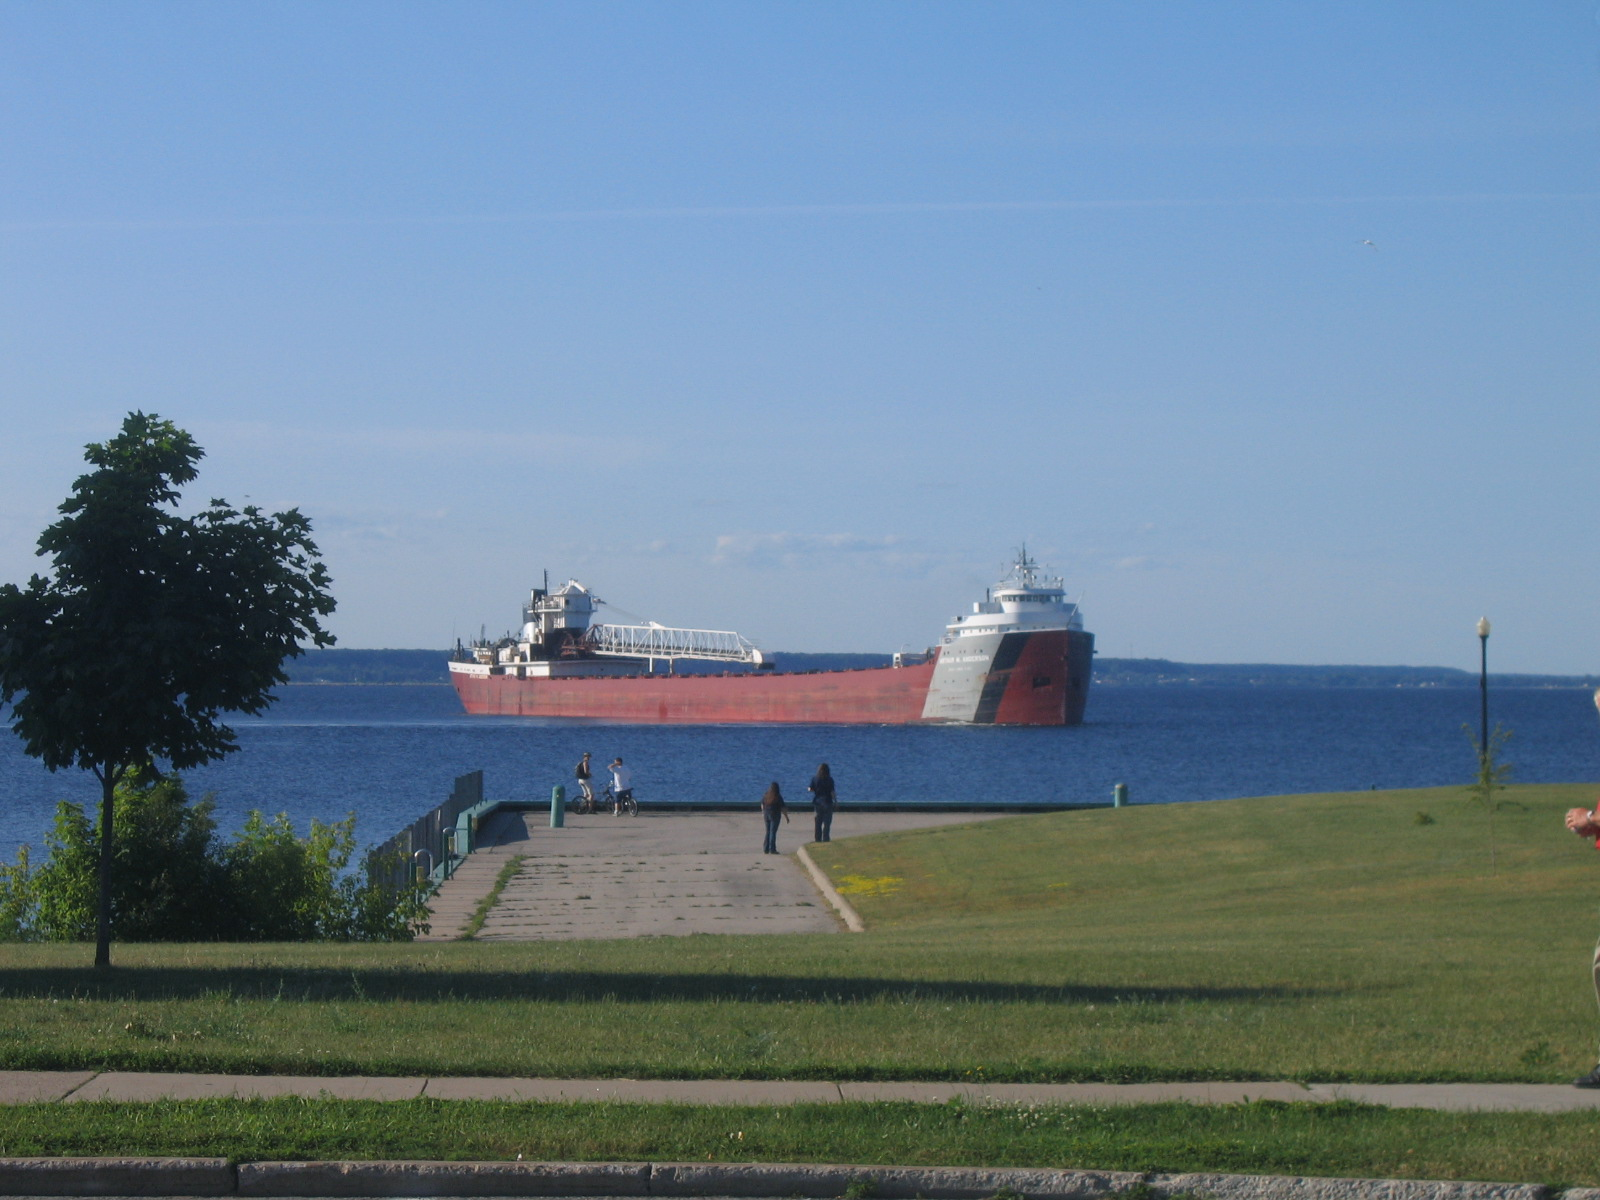 Ore freighter Arthur M. Anderson departing the Escanaba harbor